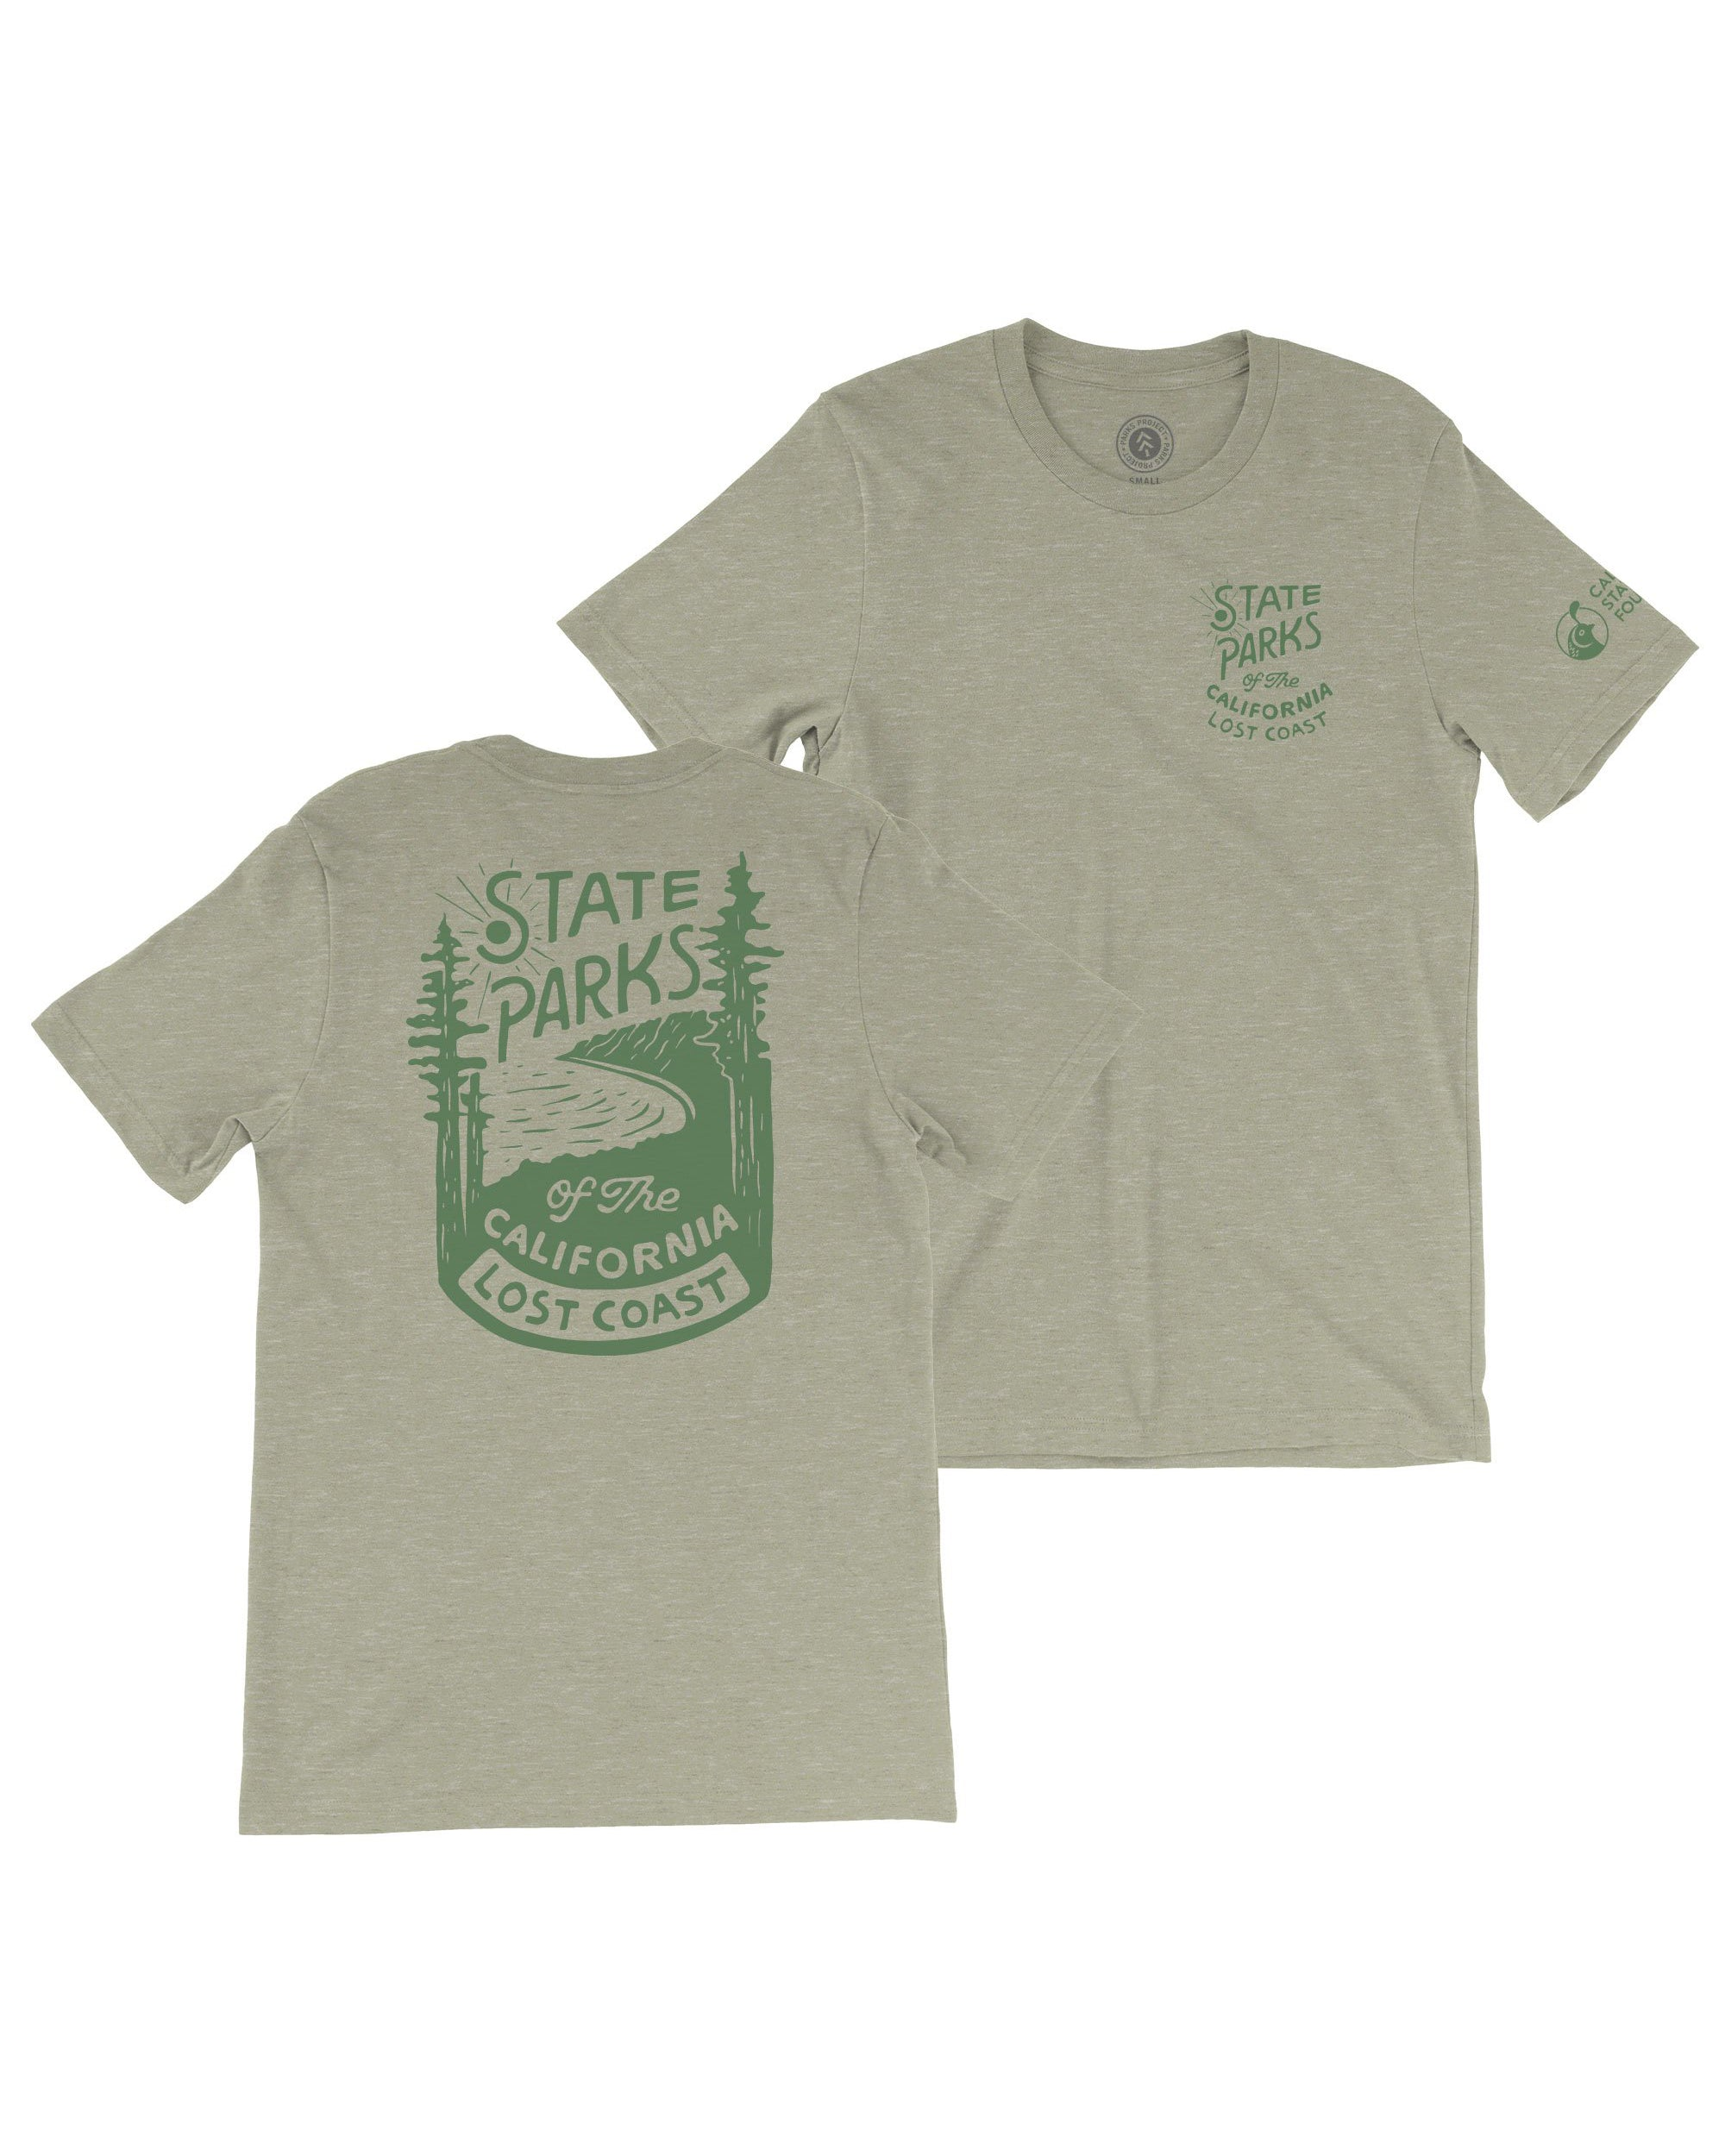 State Parks of the California Lost Coast Tee | Parks Project | California State Parks Shirt